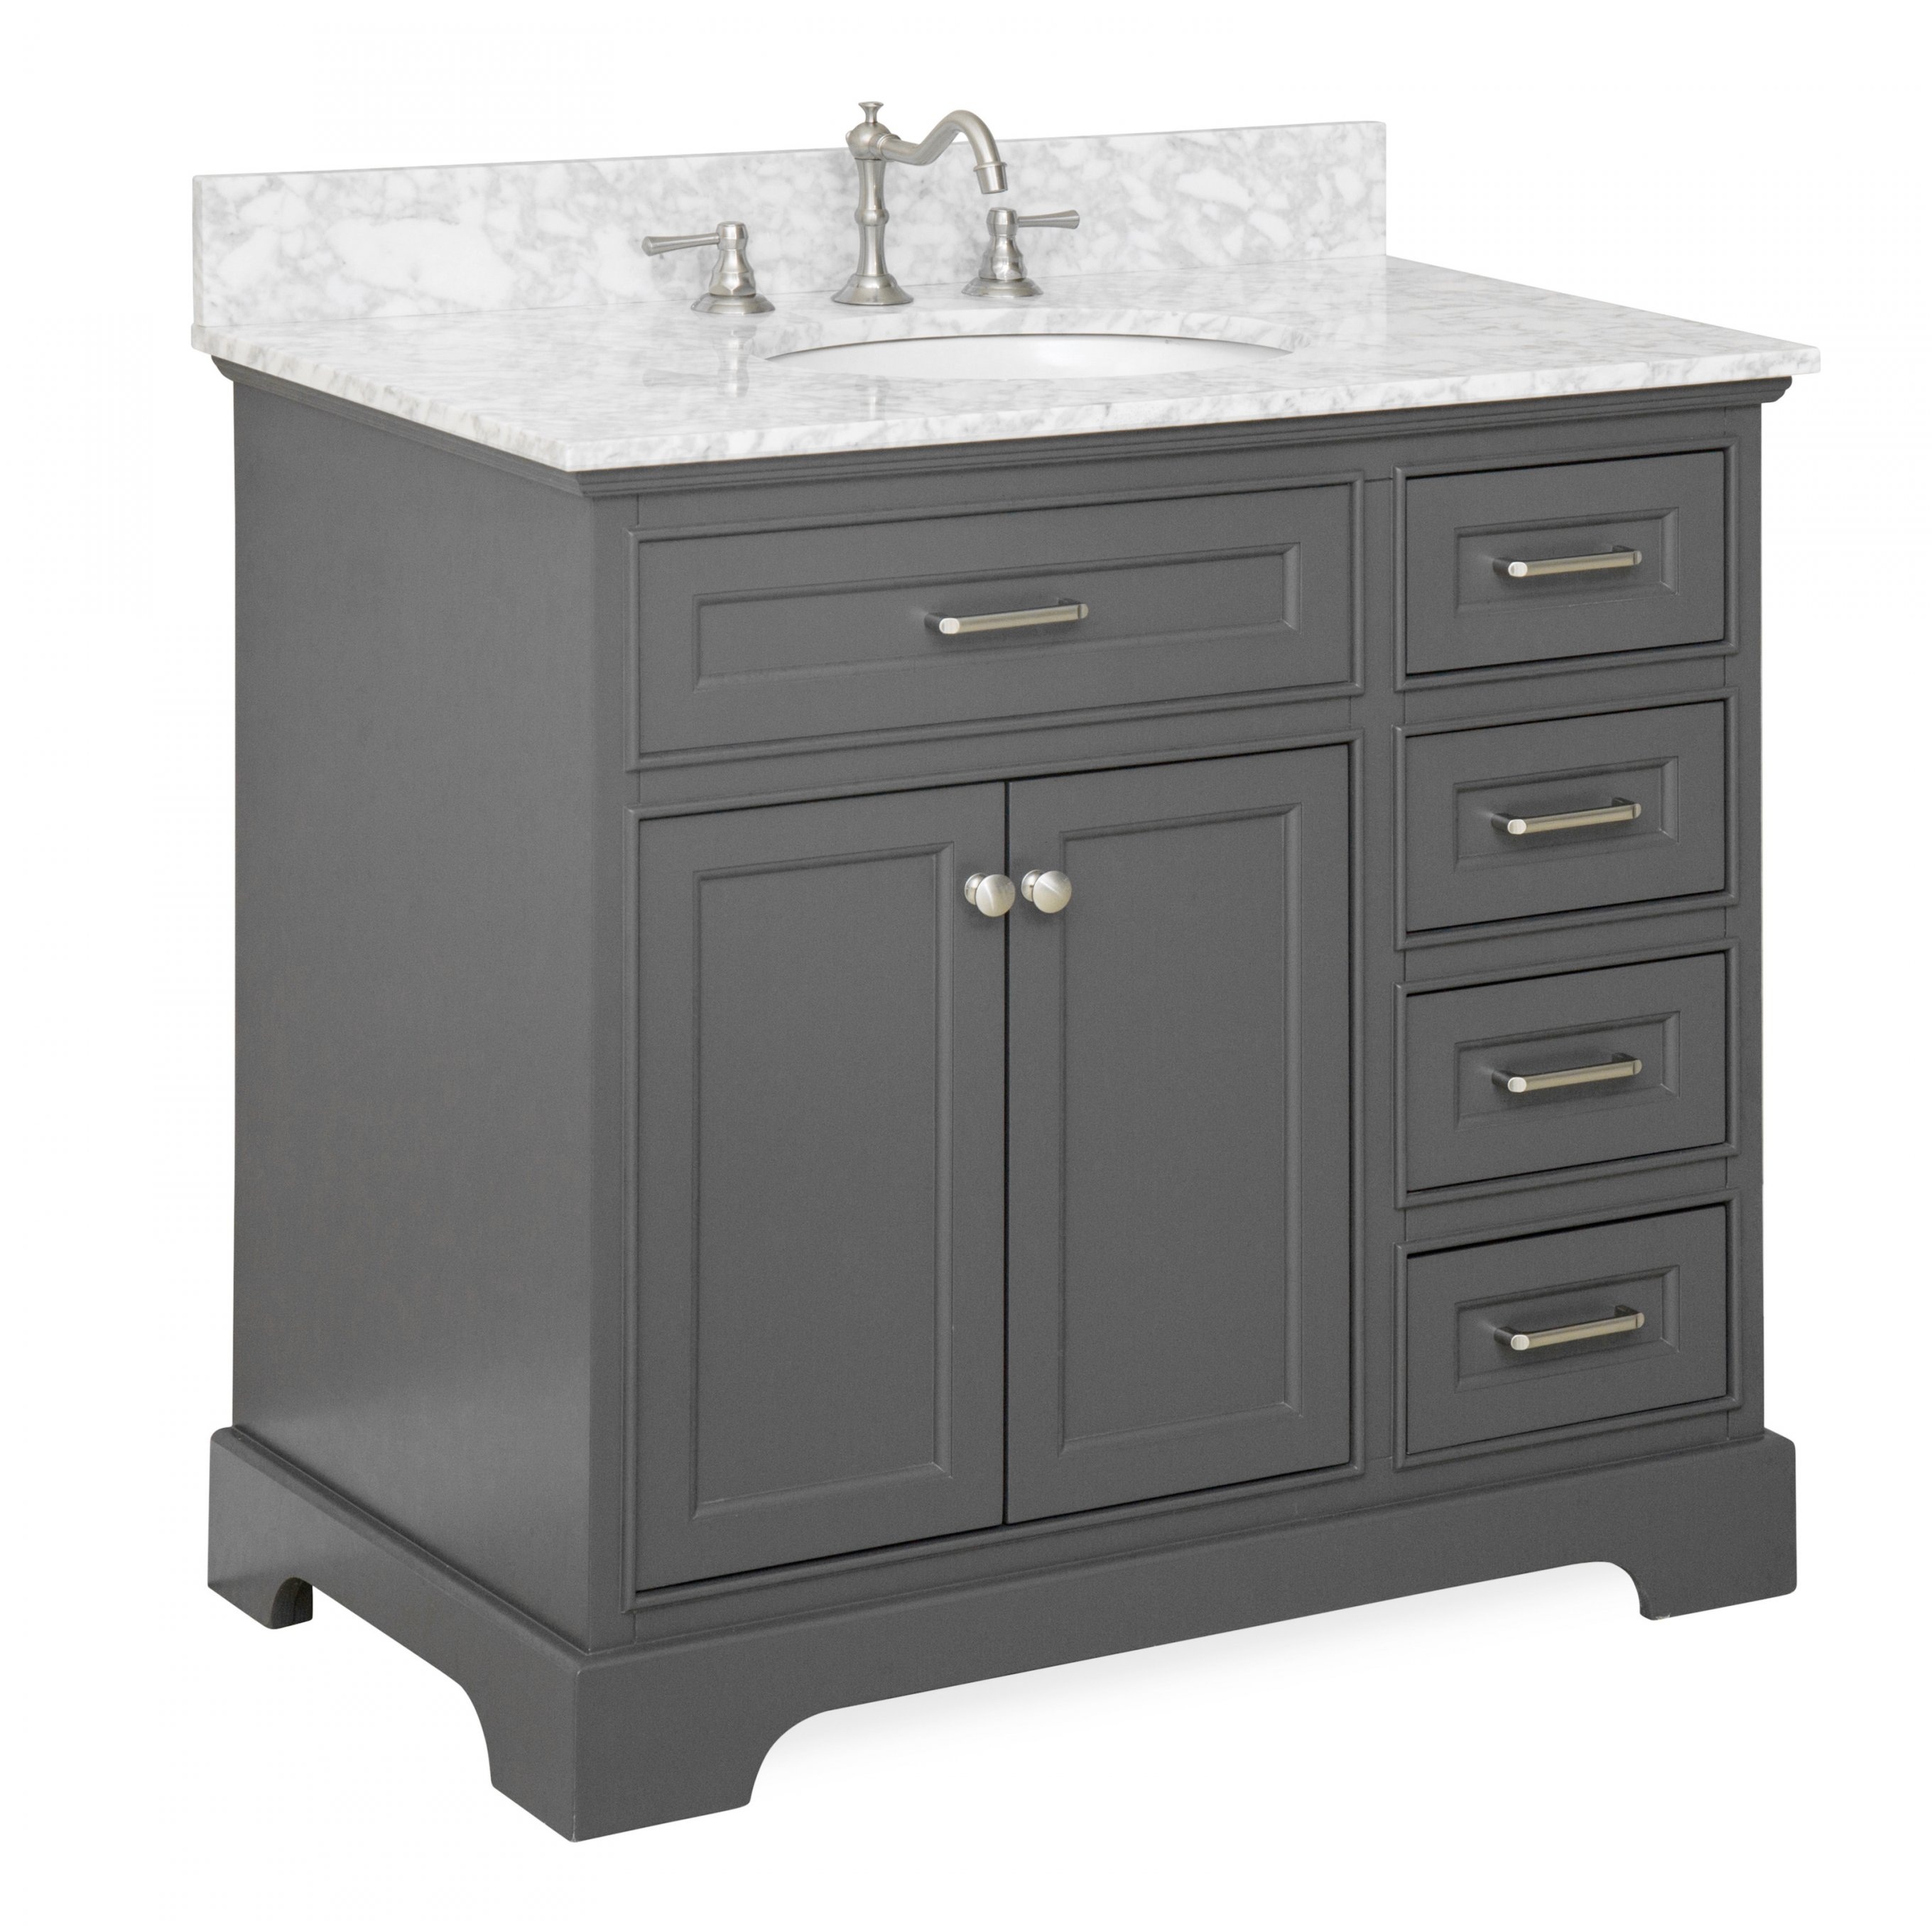 Fabulous Bathroom : 42 Inch Vanity Top Bathroom Cabinets At Lowes Lowes within Elegant 42 Bathroom Vanity Cabinets